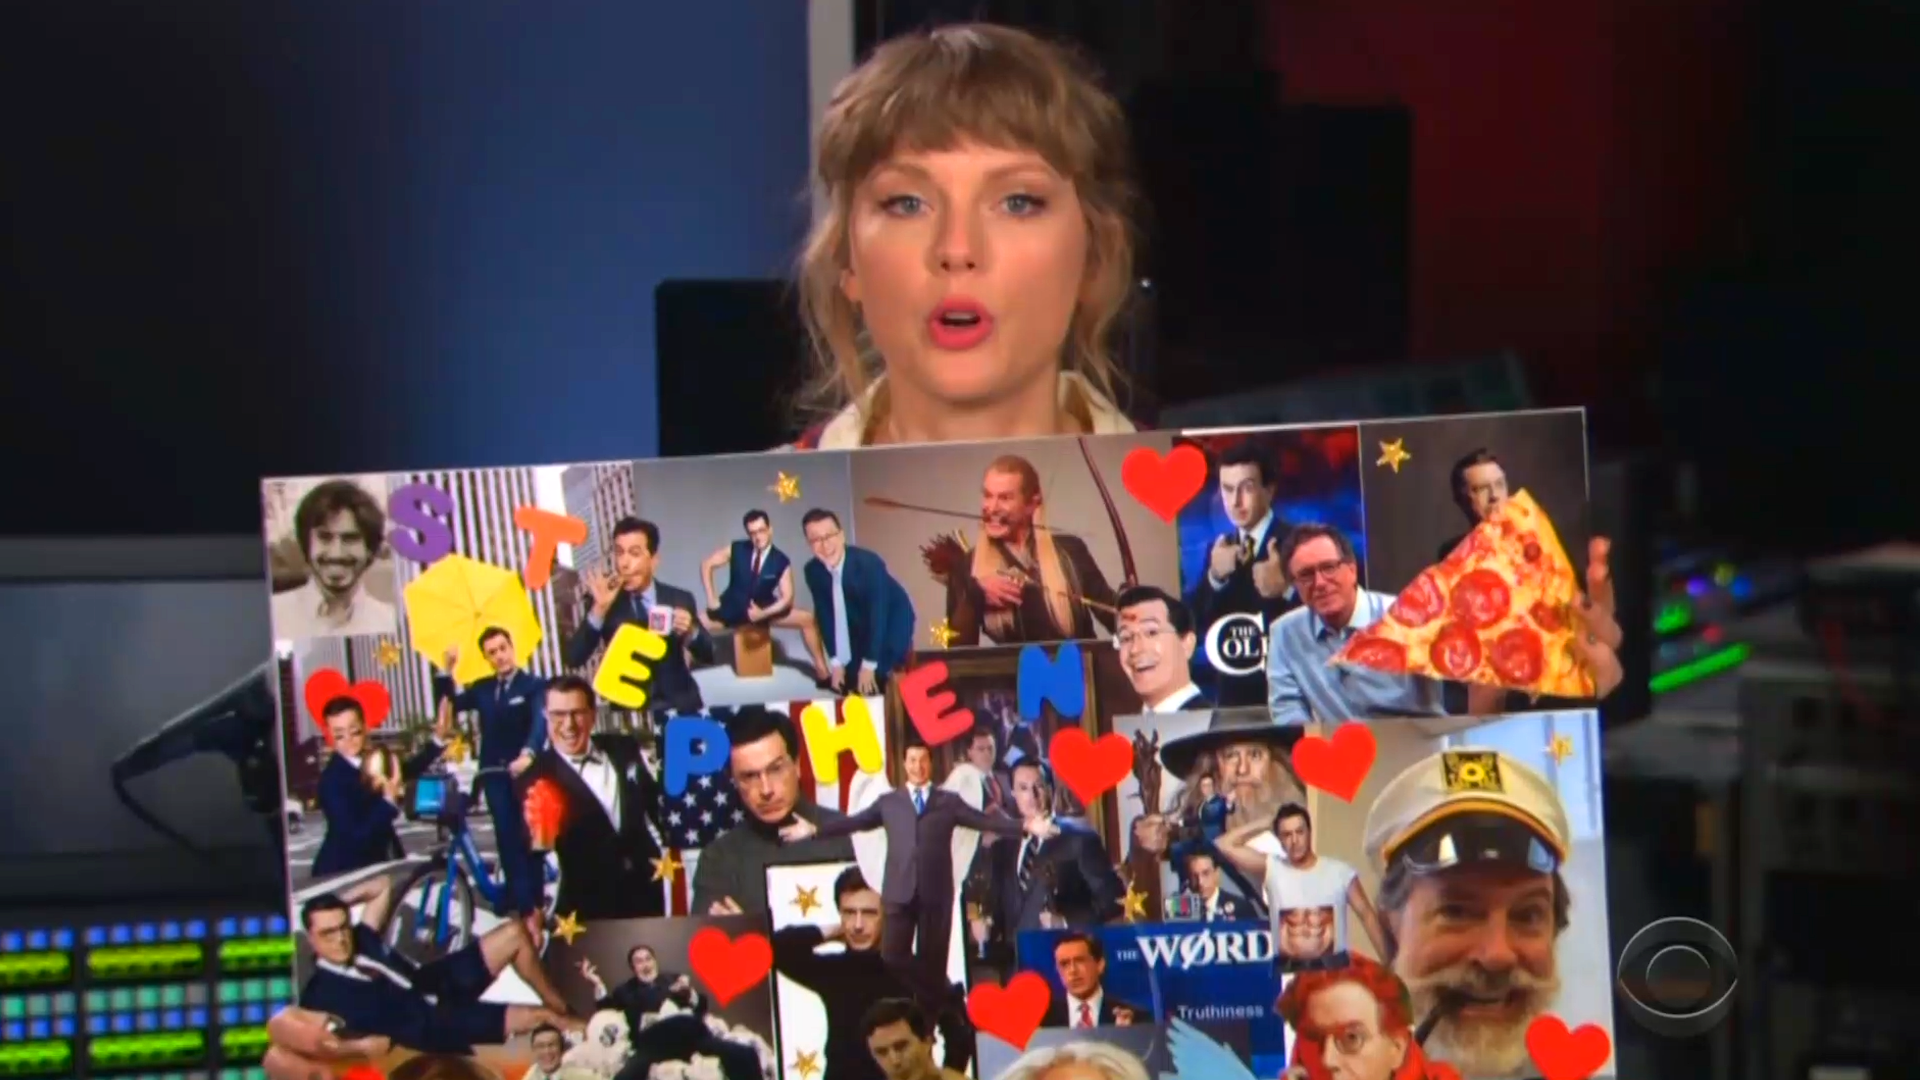 Taylor Swift's appearance on 'The Late Show With Stephen Colbert' has fans scrambling for answers – Yahoo Entertainment